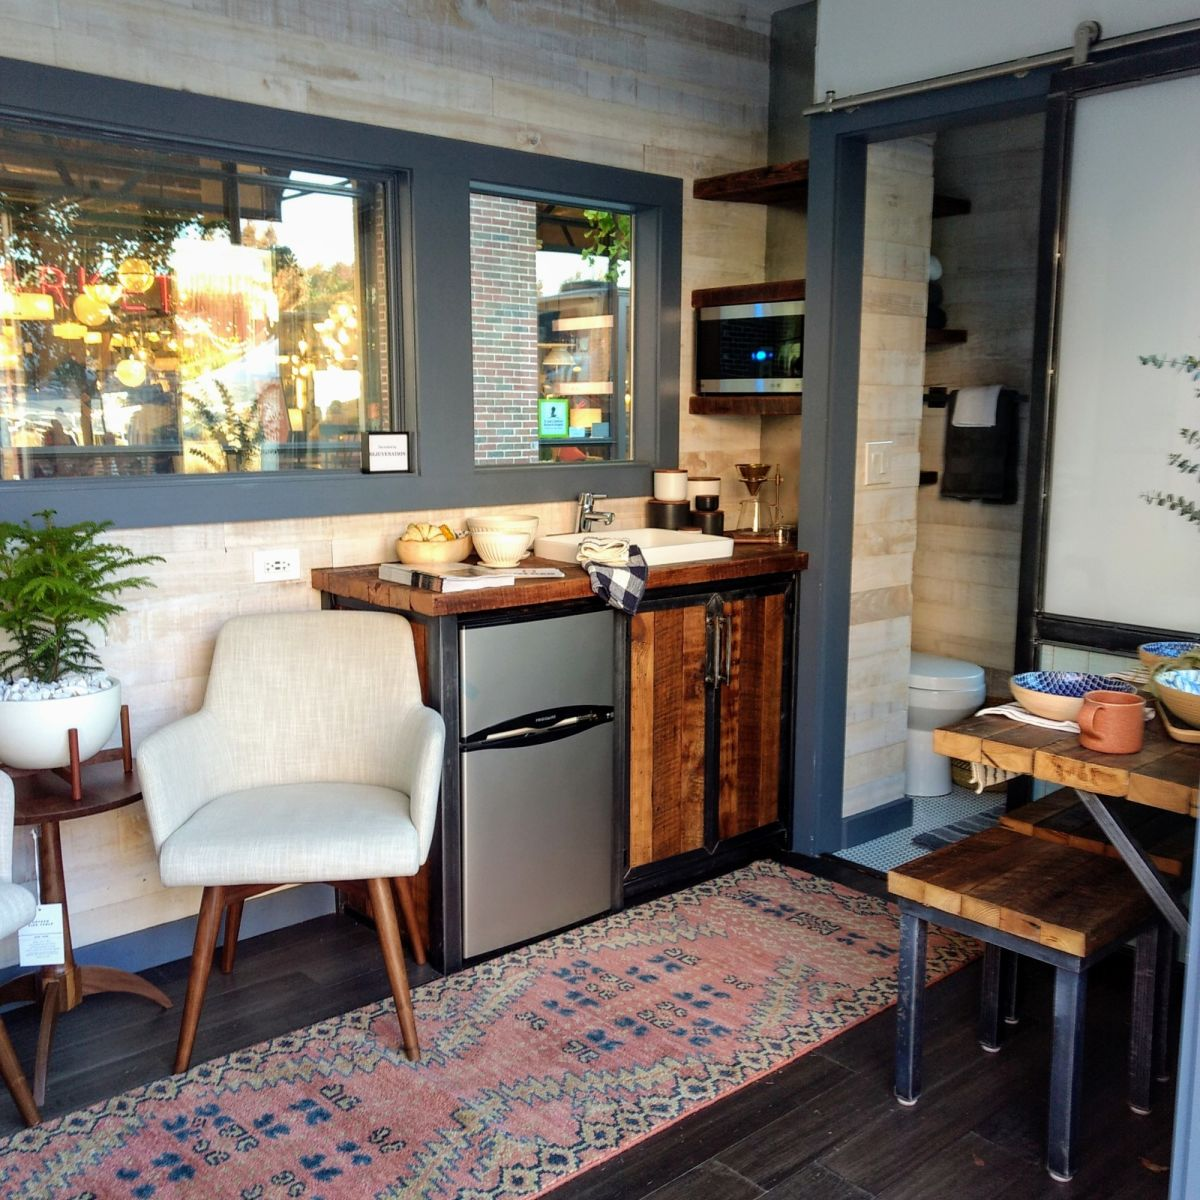 20' Shipping Container House